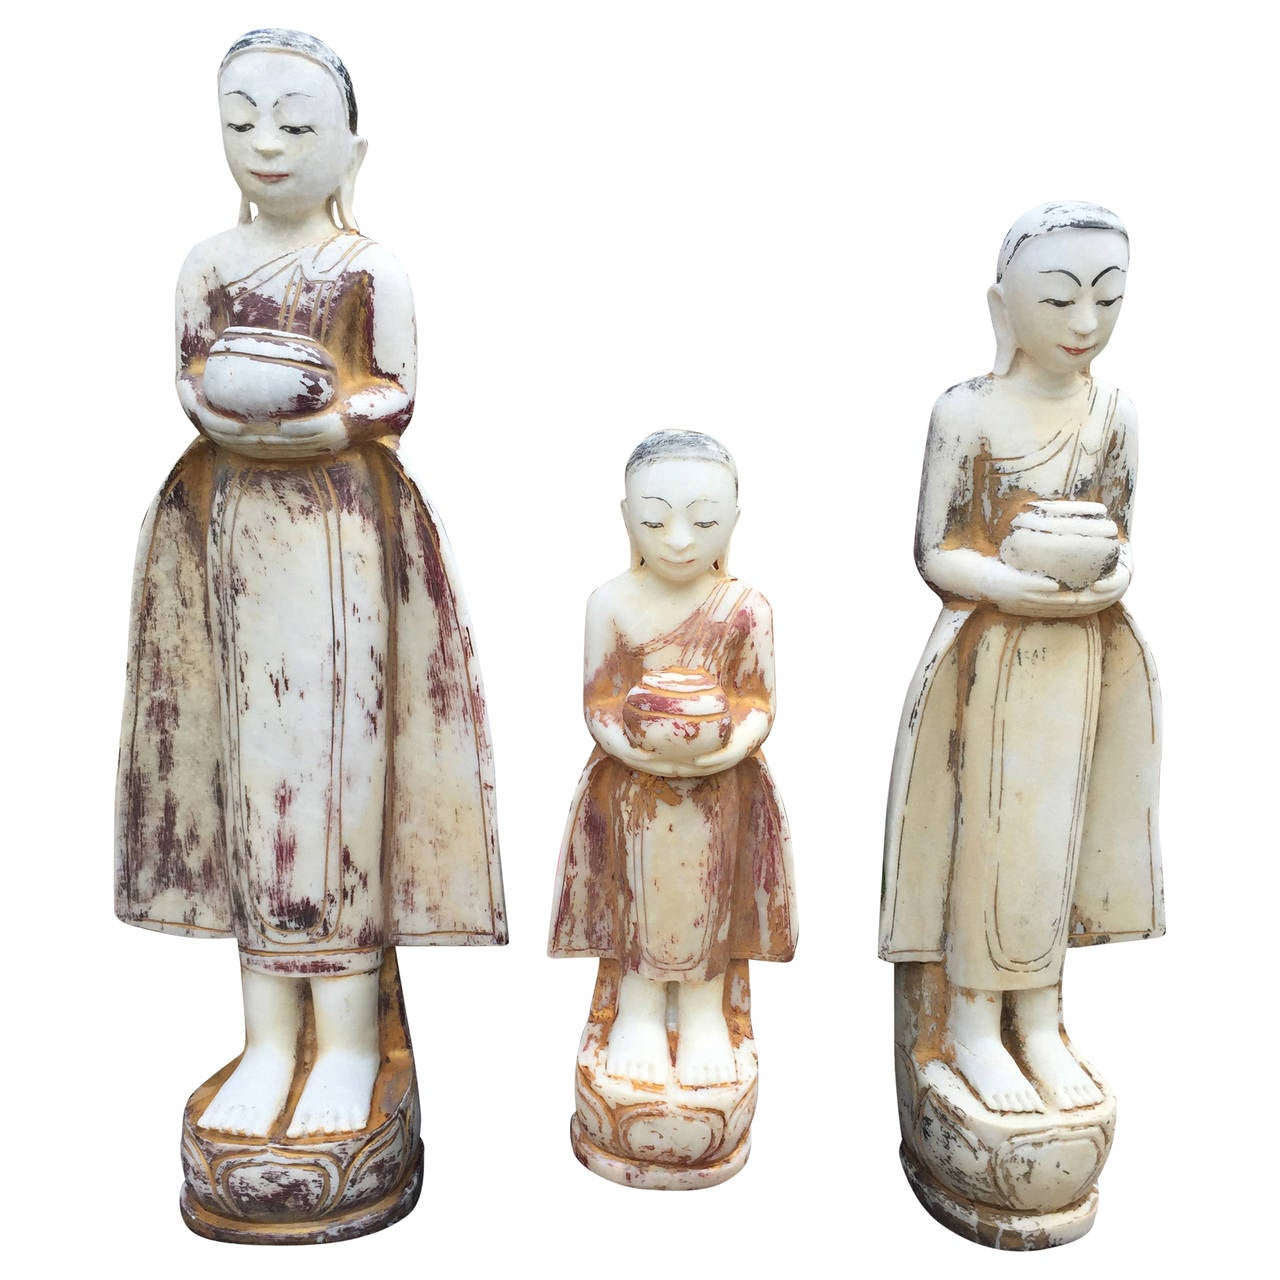 Three Offering Attendants from Old Mandalay Burma Early 20th Century